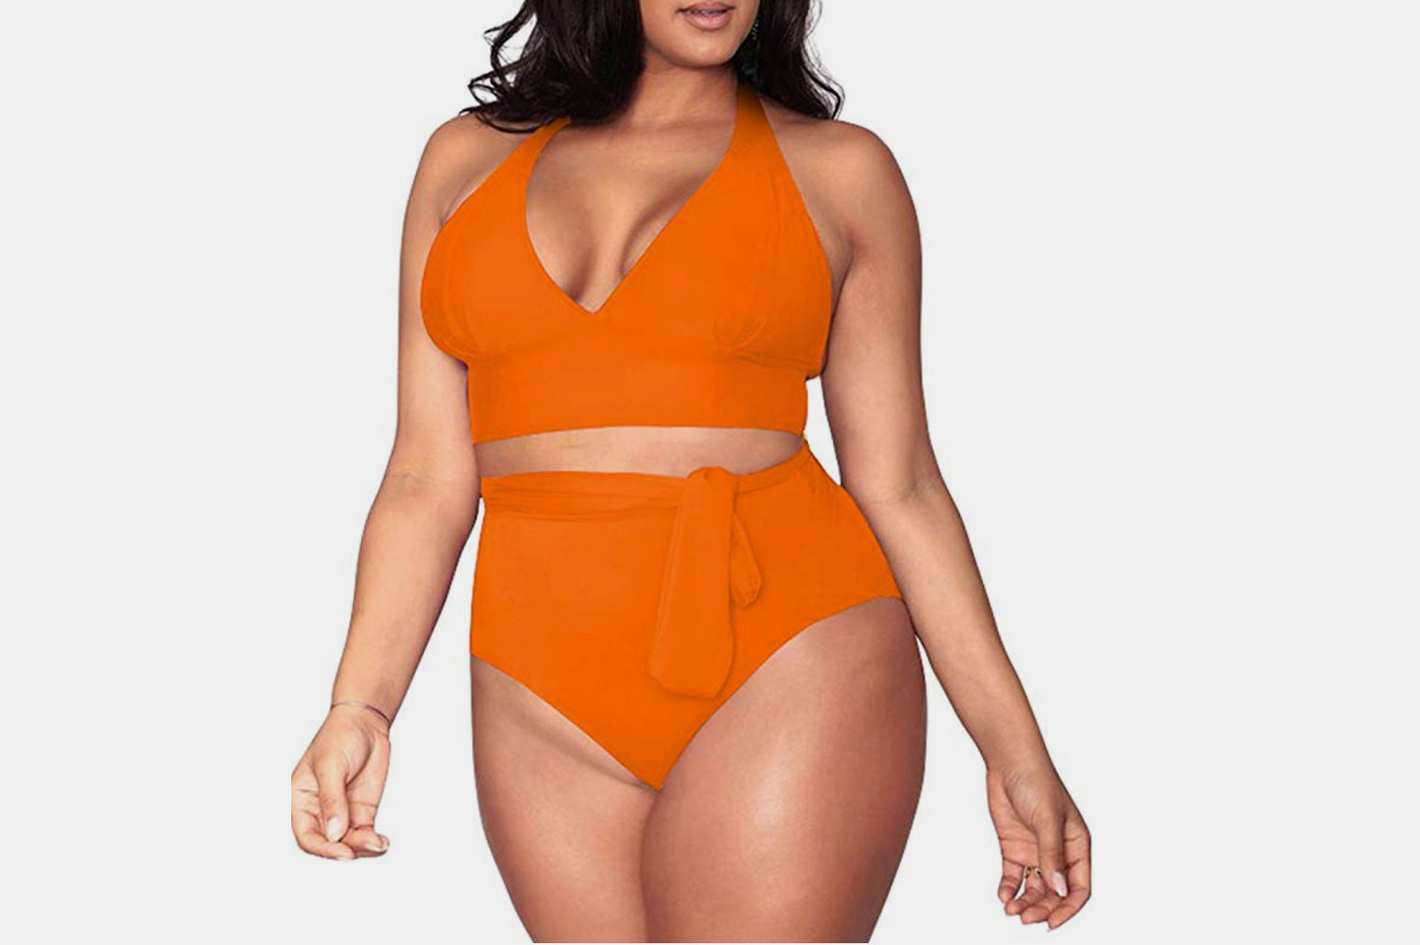 Sovoyontee Plus Size High Waisted Swimsuit in Neon Orange